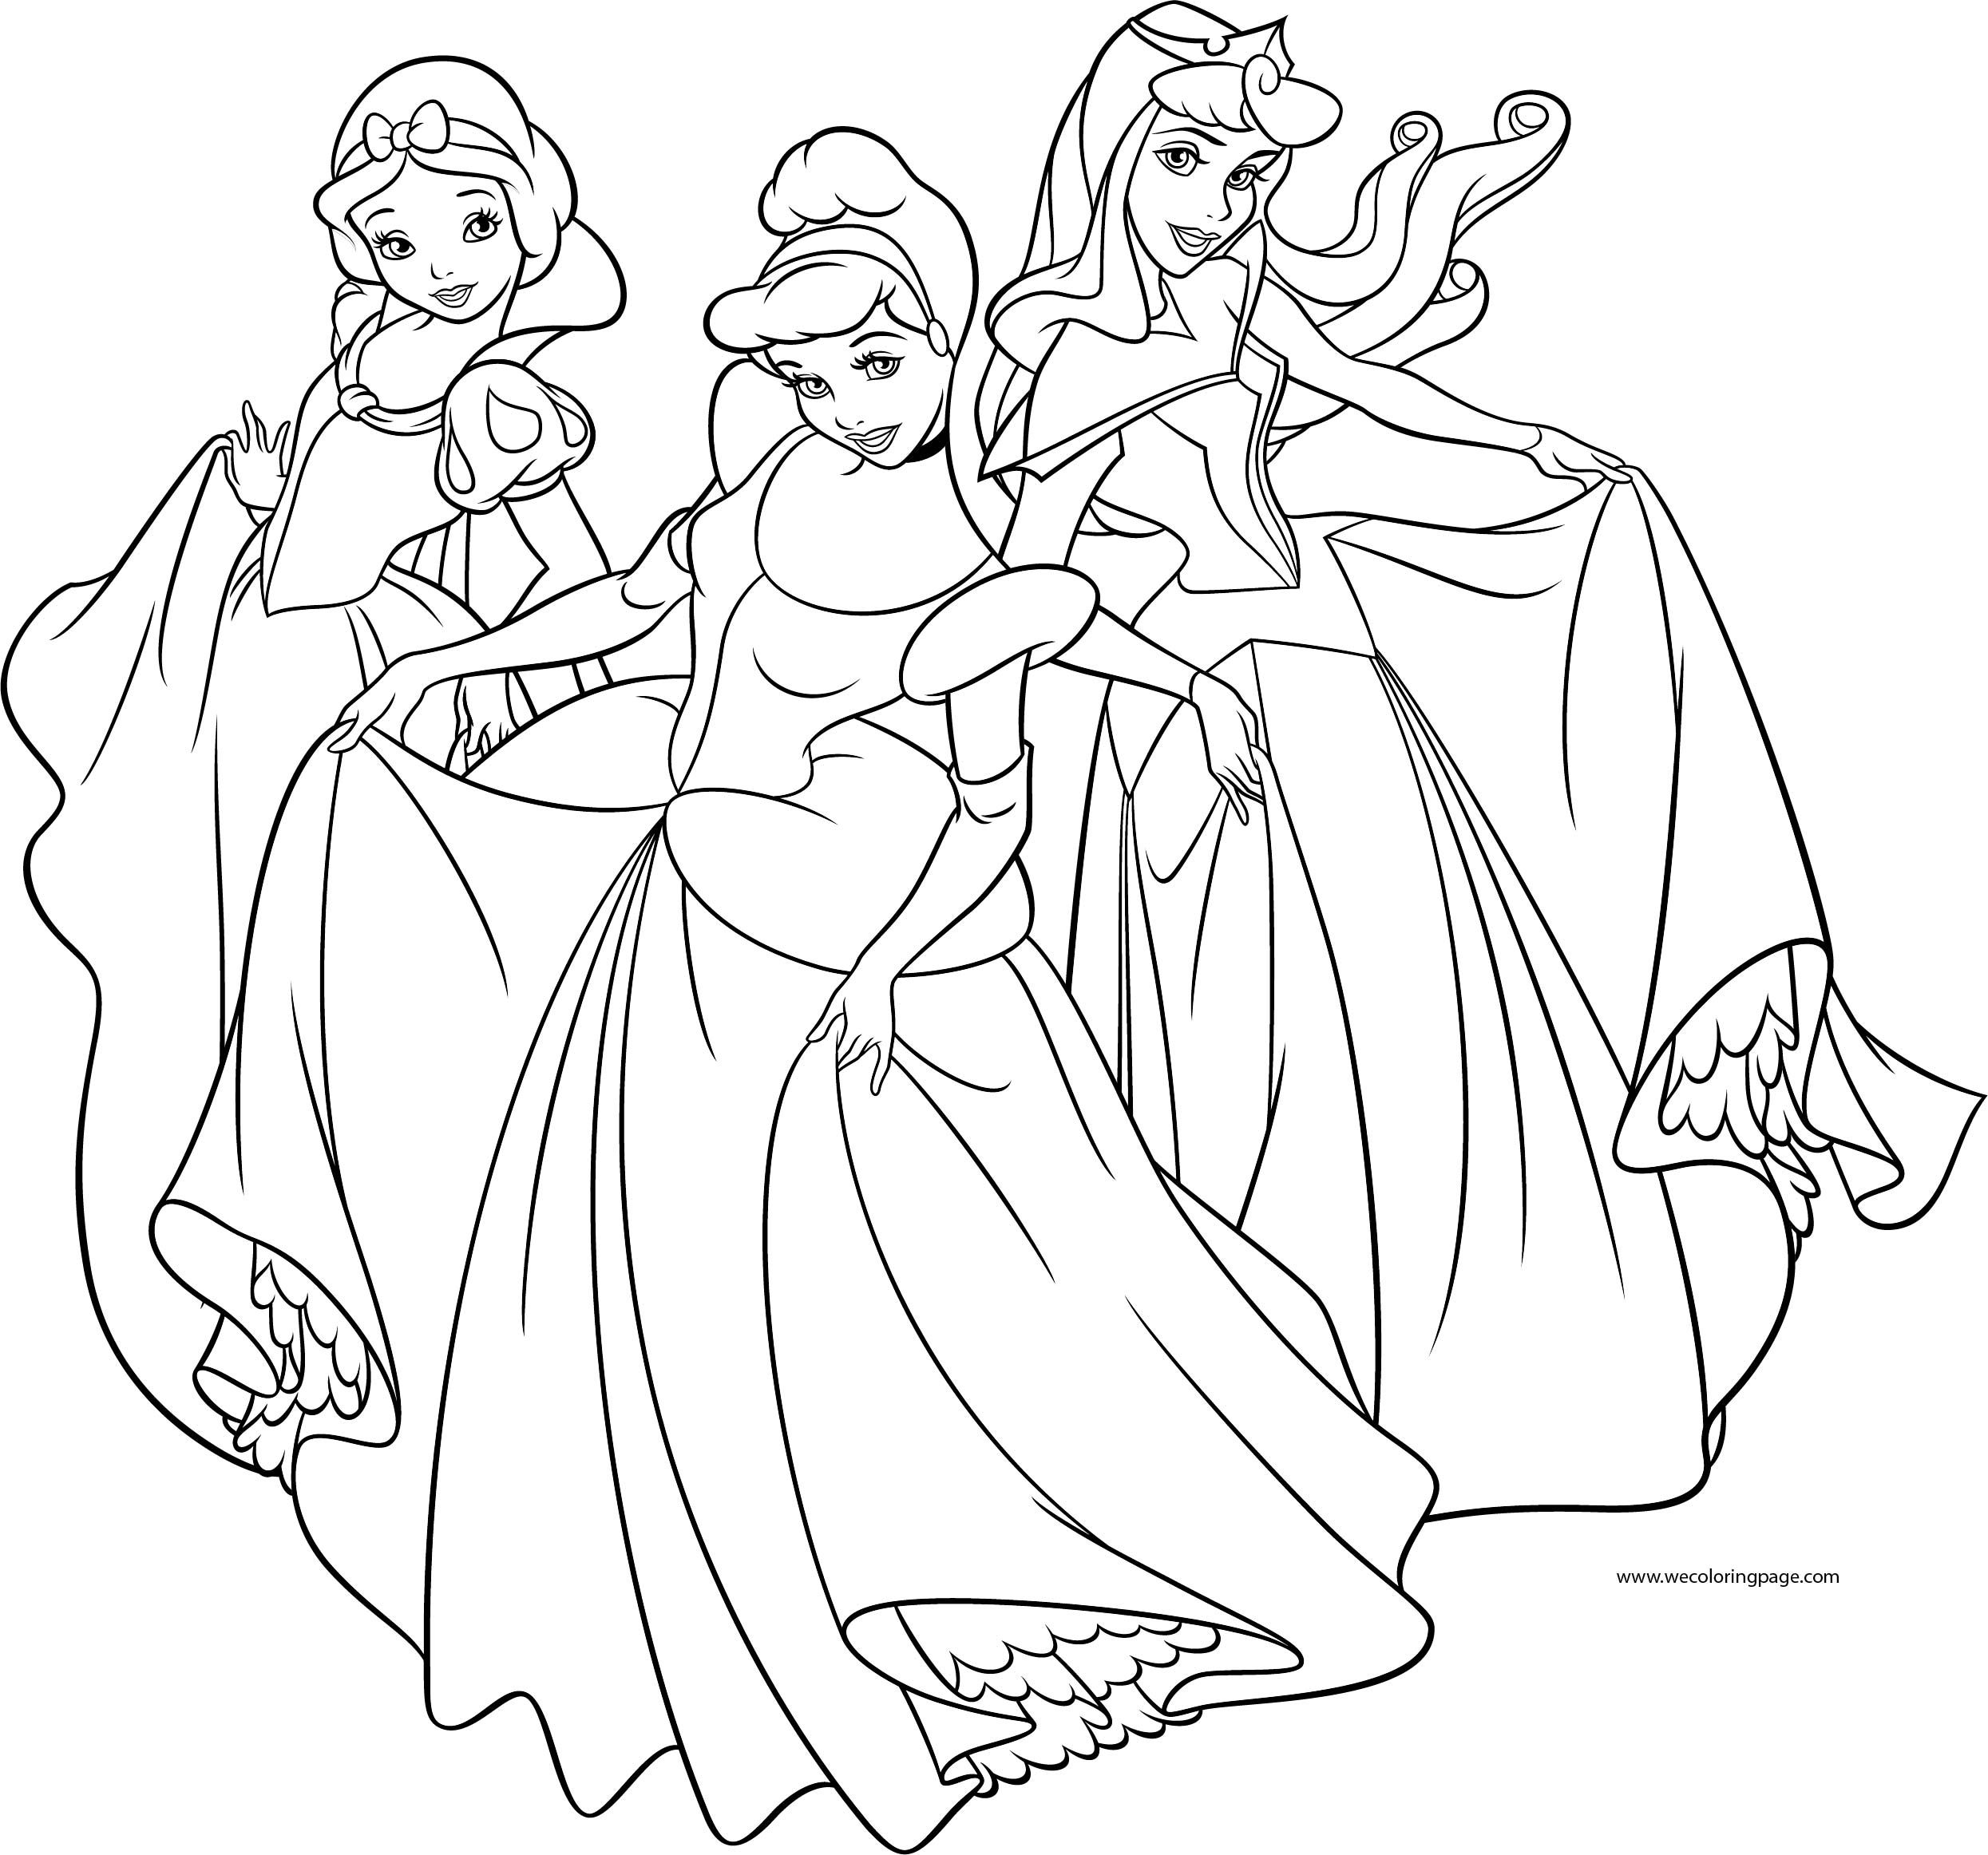 disney princess group coloring pages the group disney princess coloring page jasmine snow disney pages group coloring princess